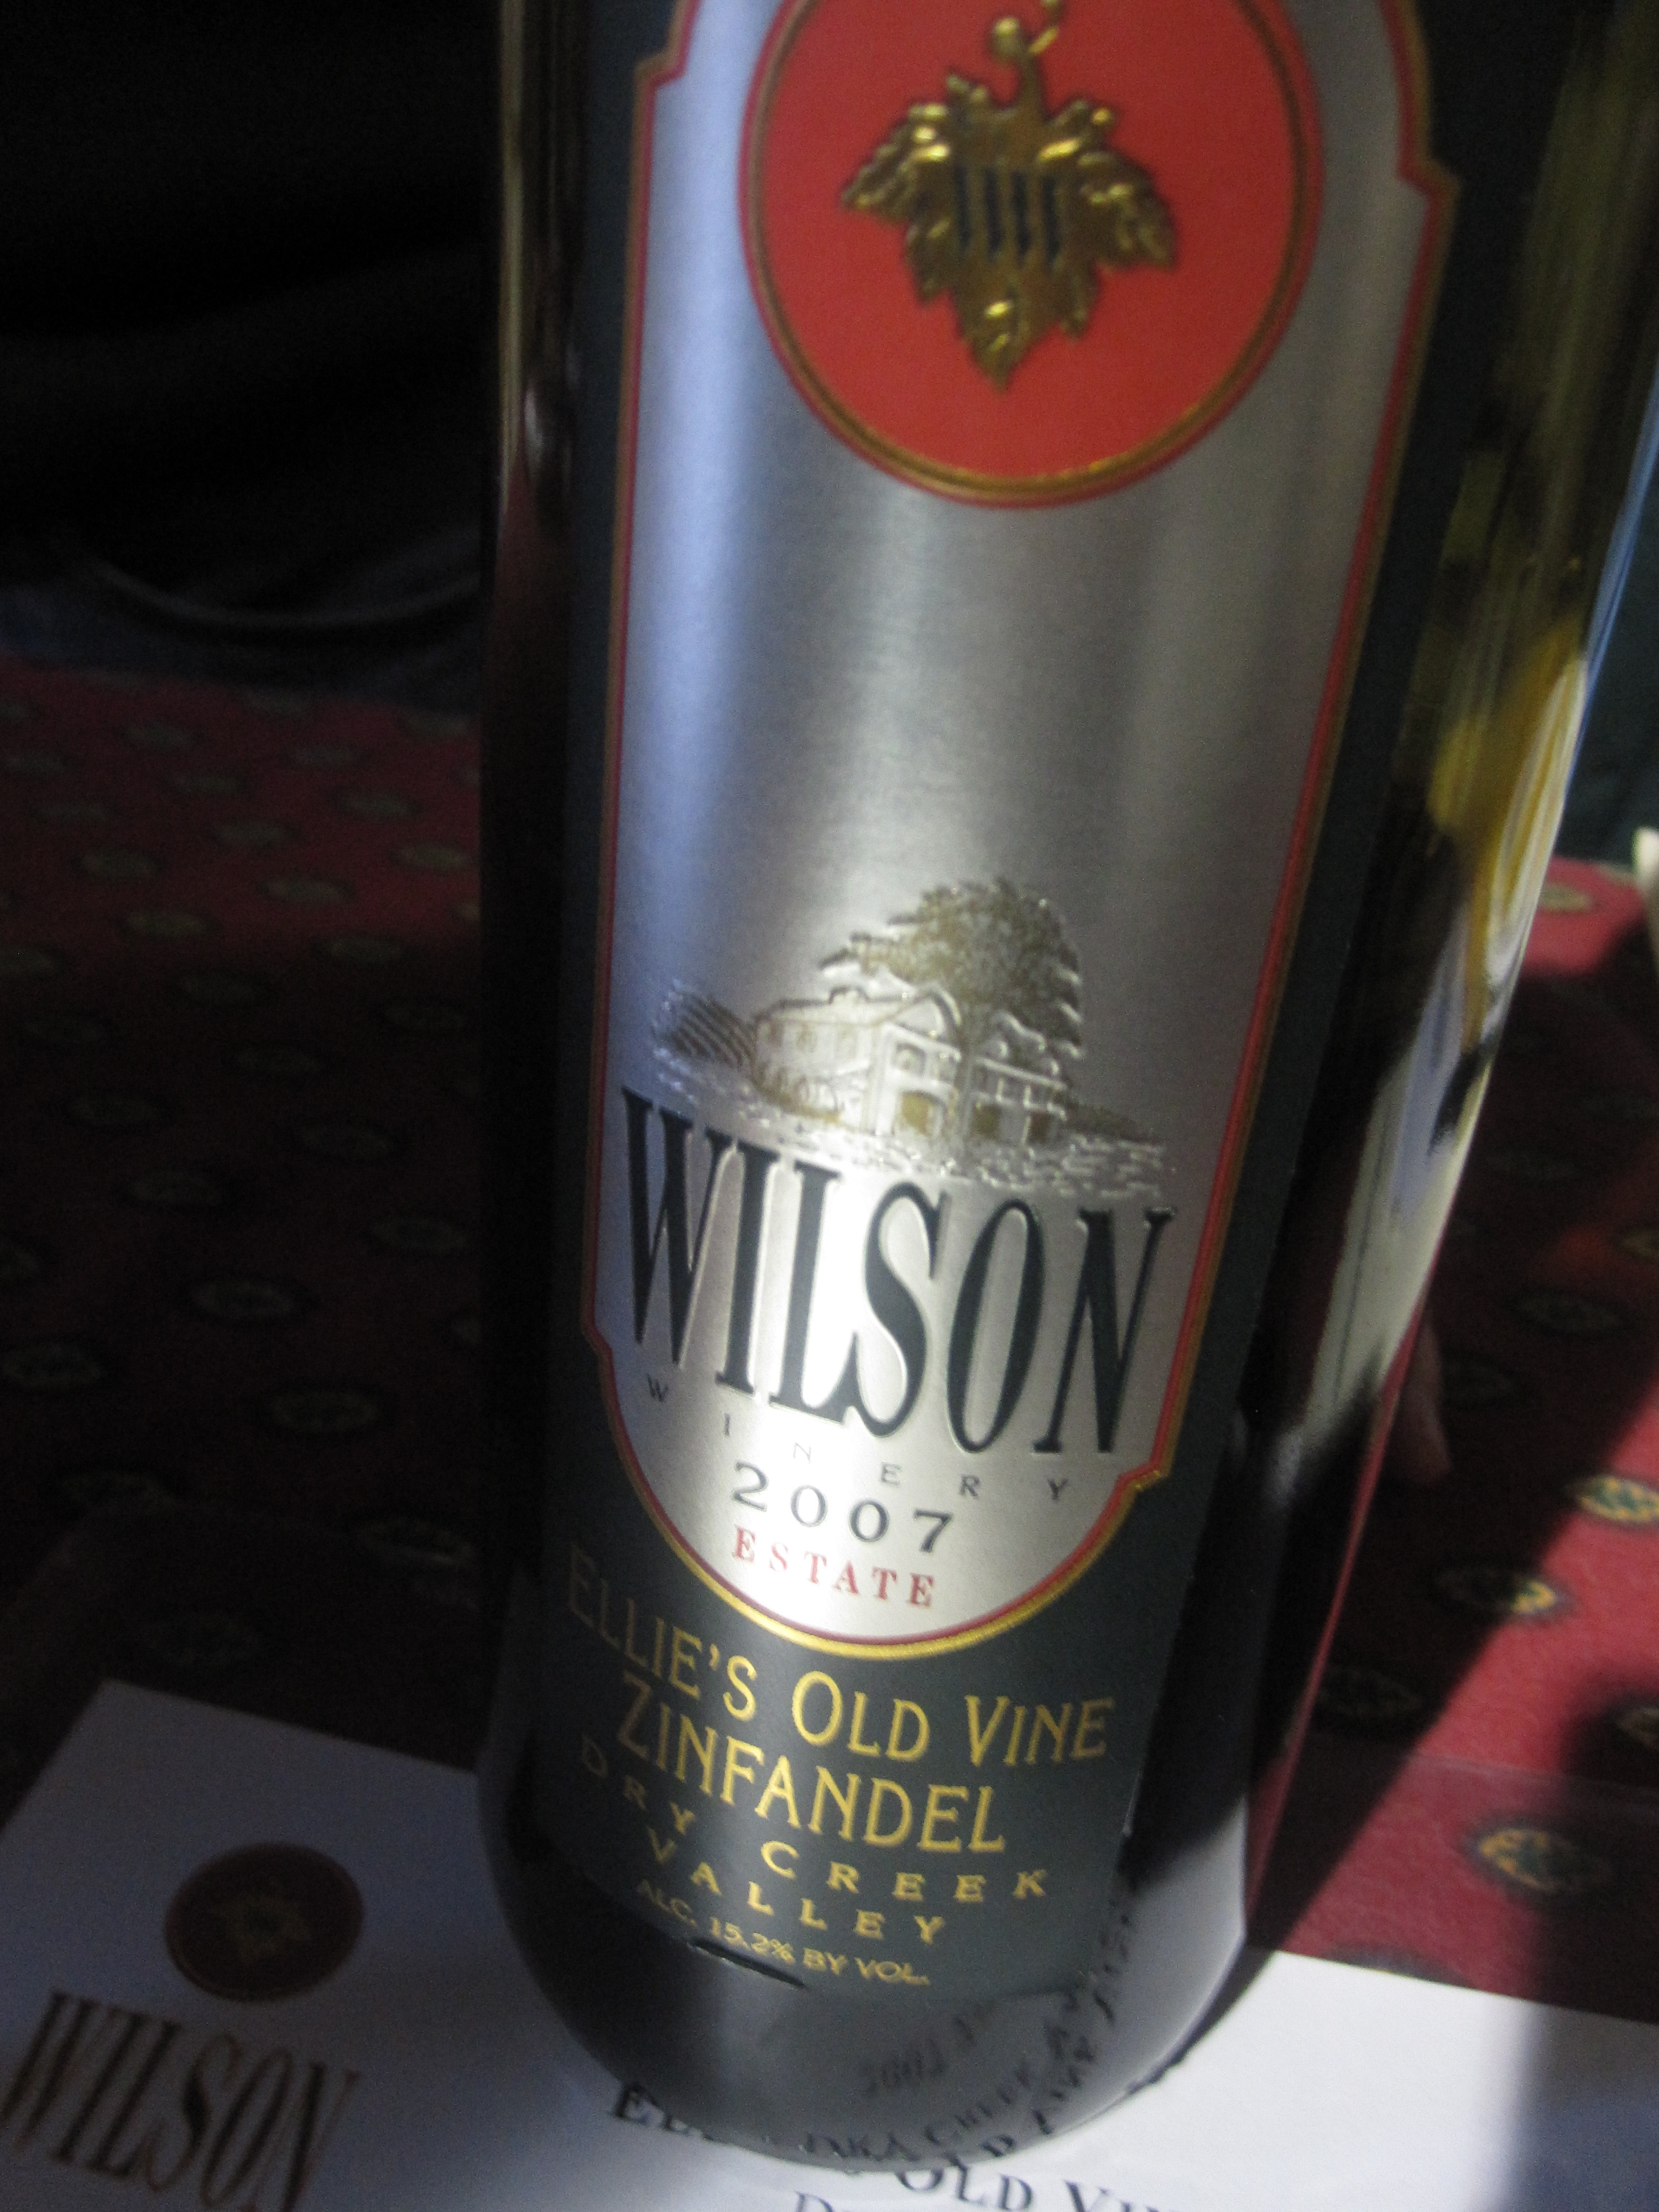 Wilson was on hand pouring Zinfandel.